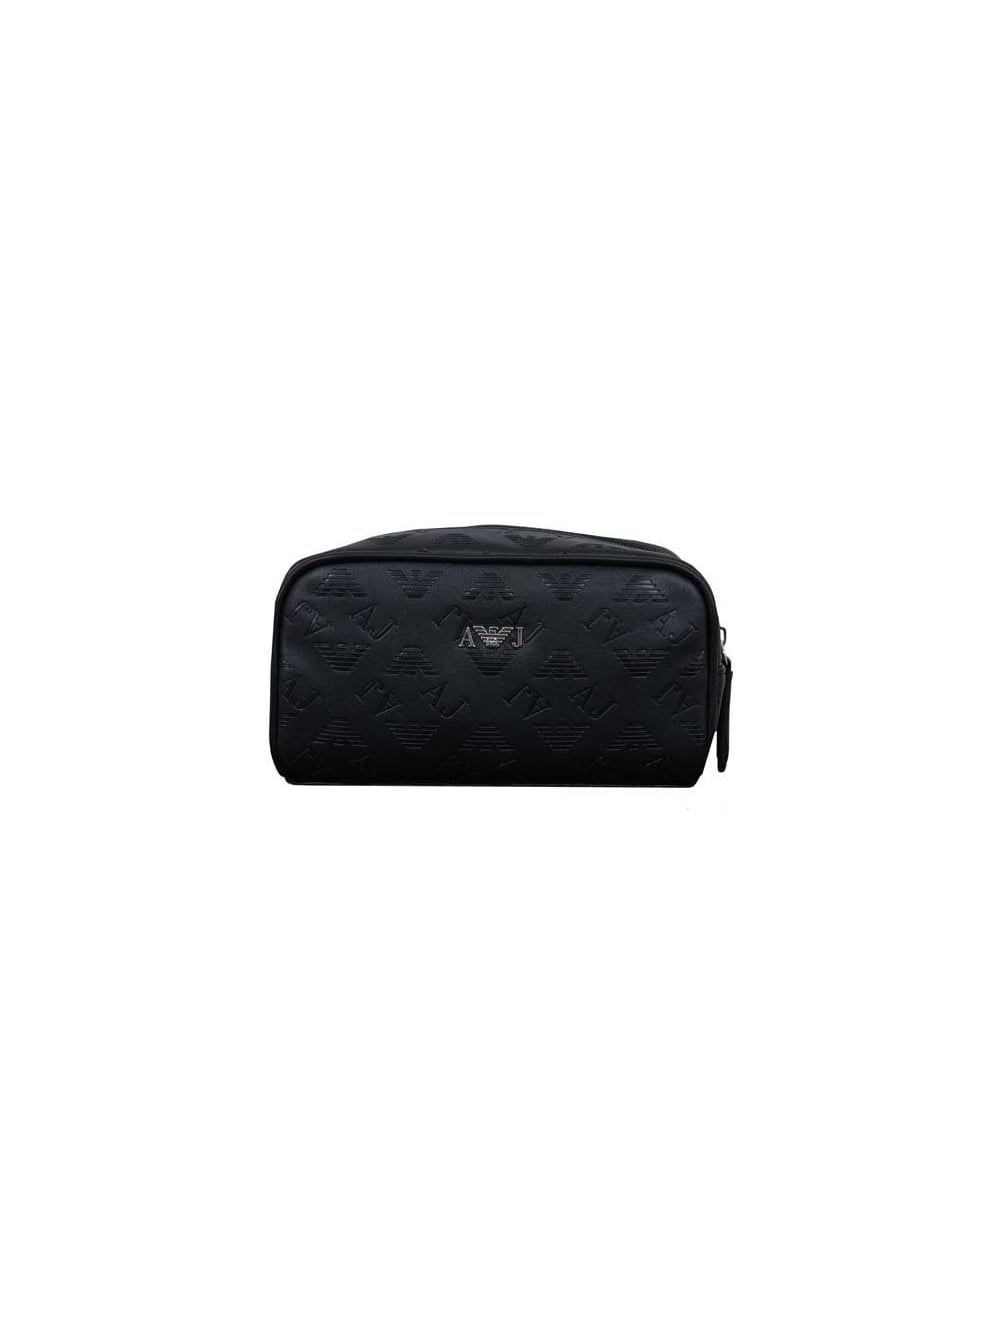 6532c4aede05 Armani Jeans Embossed Logo Toiletry Bag in Black - Northern Threads